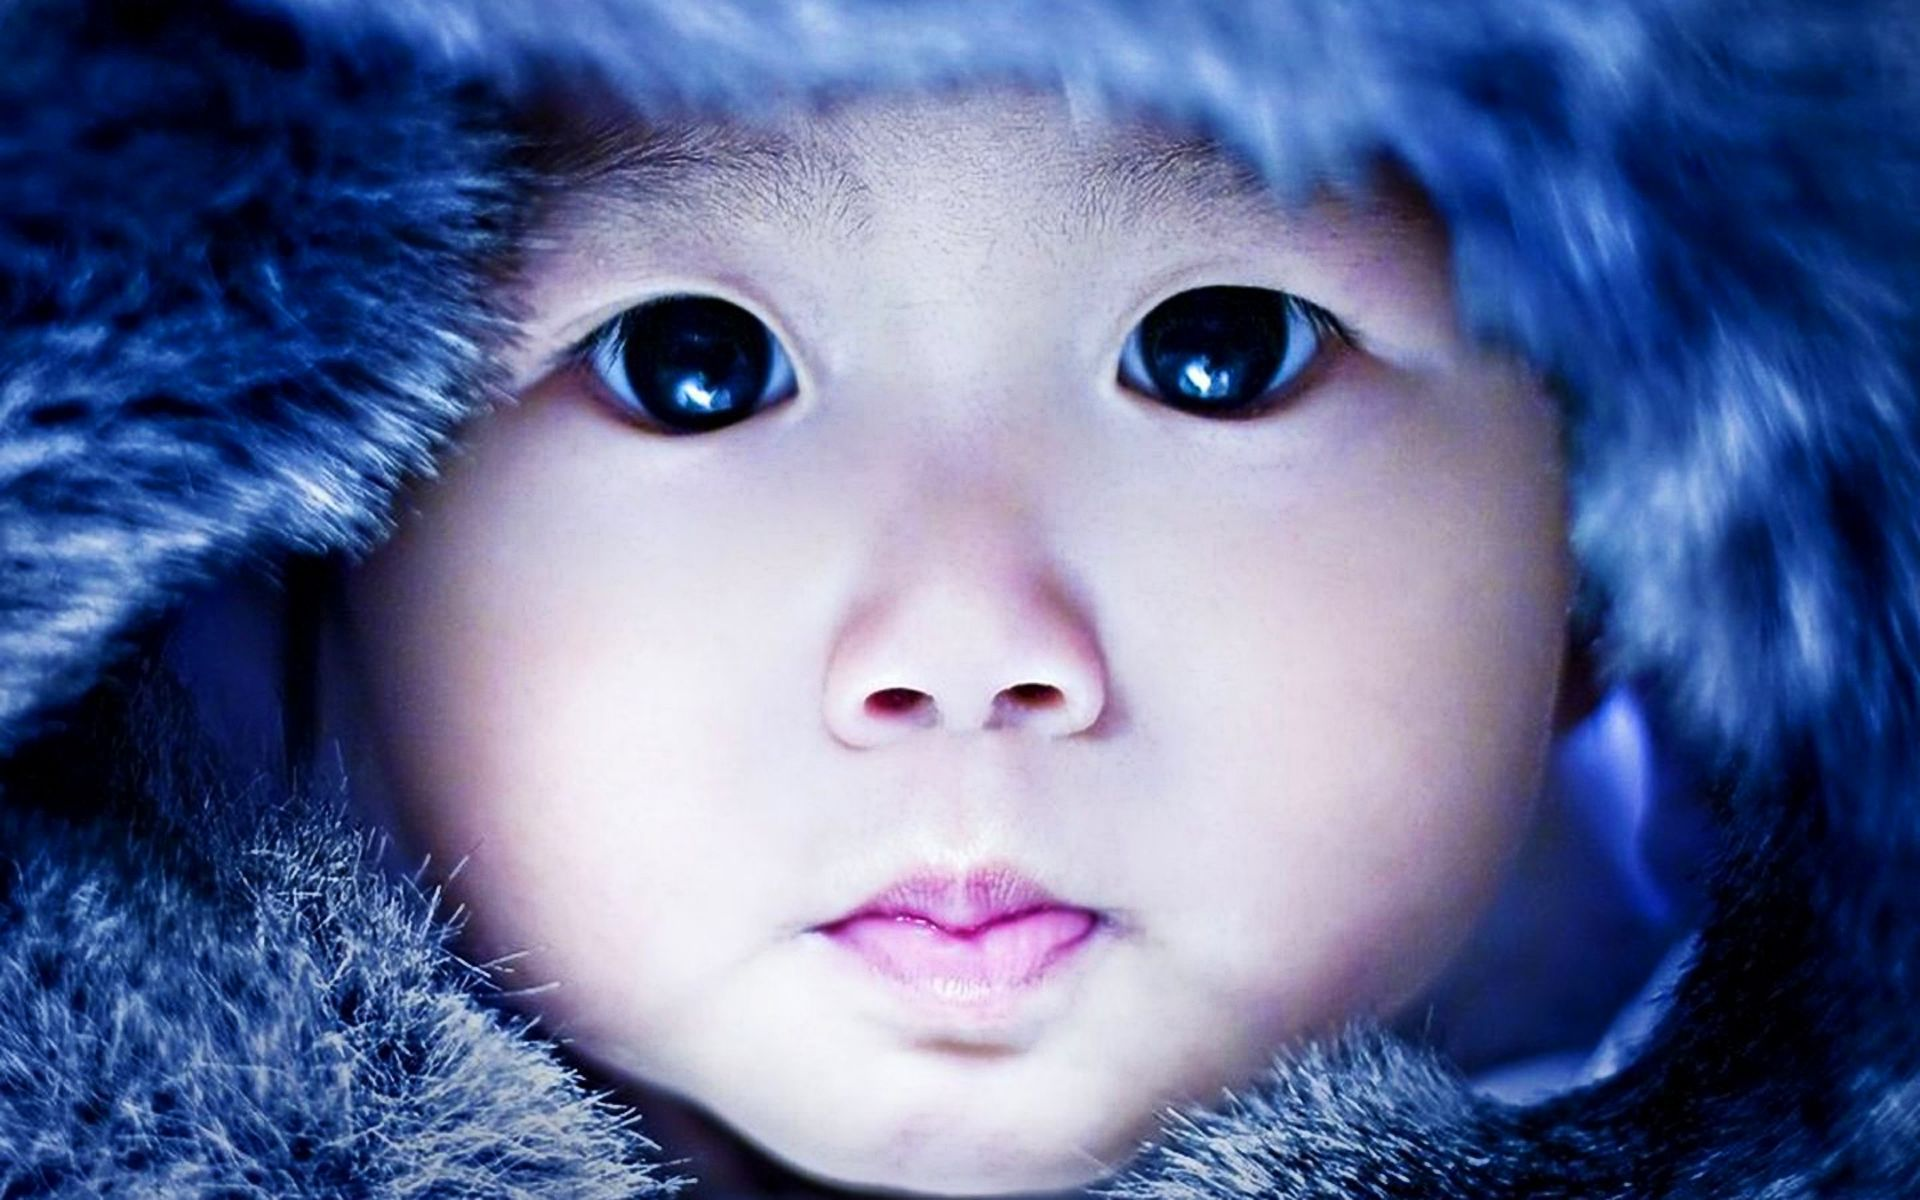 Baby Eyes Wallpaper Cute Baby Wallpaper Baby Pictures Newborn Baby Eyes